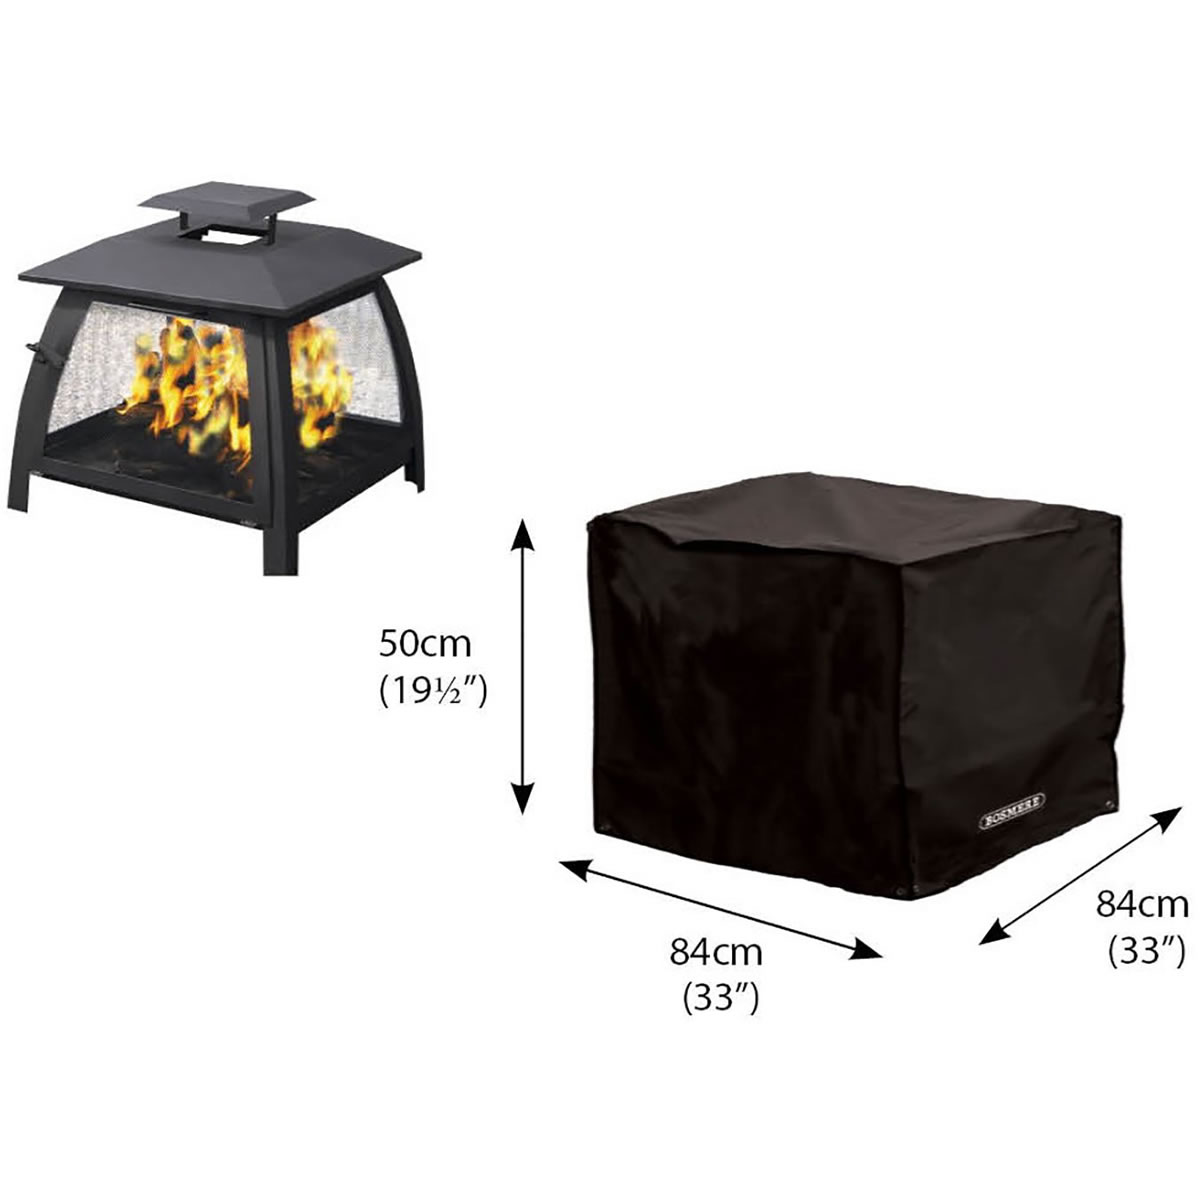 Extra image of Storm Black Large Fire Pit Cover